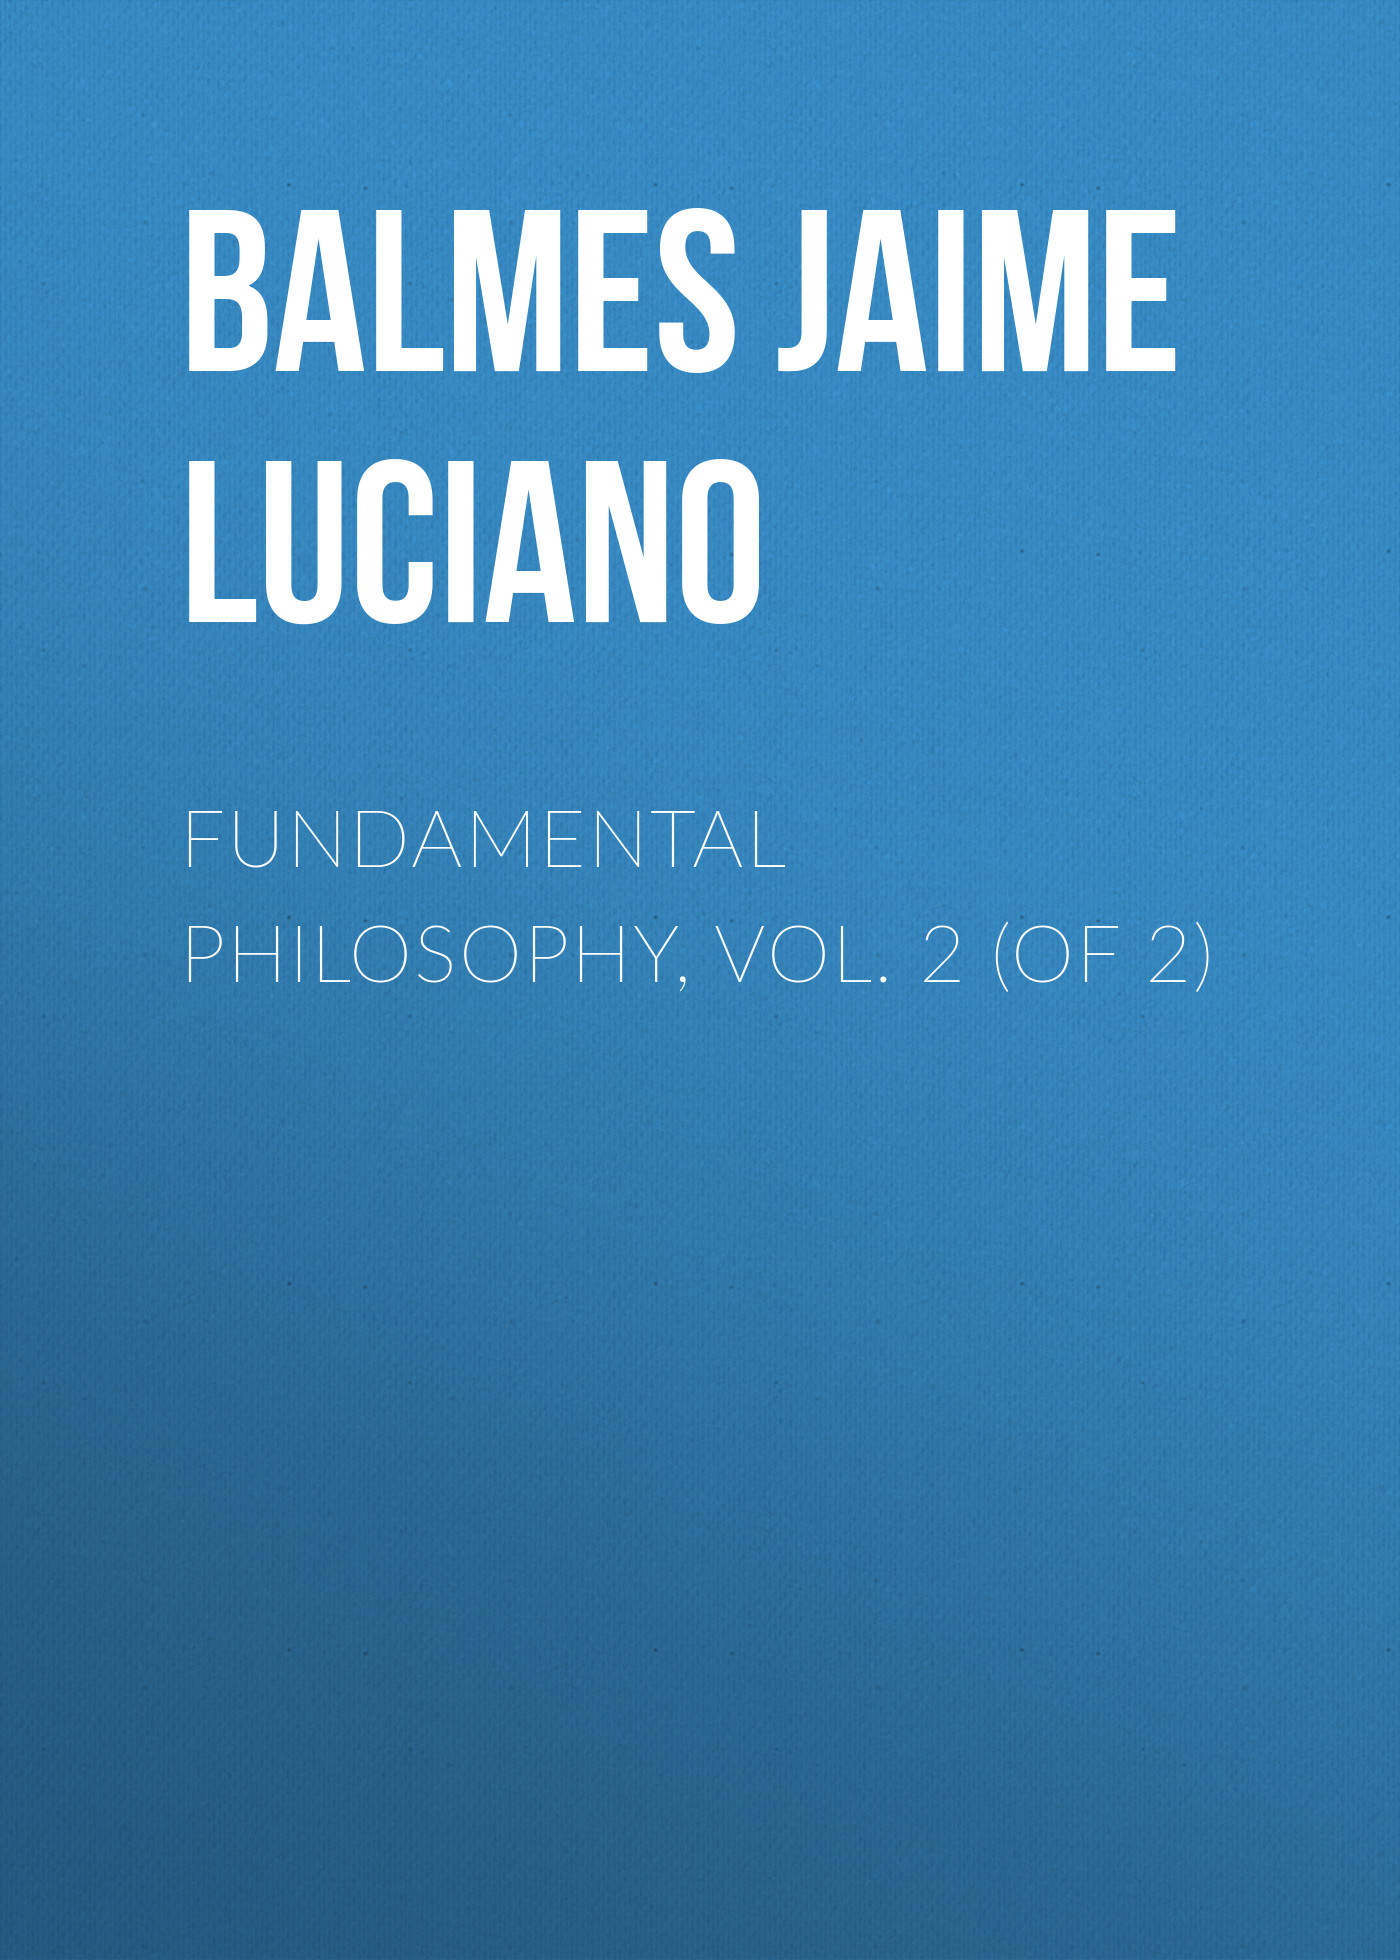 Balmes Jaime Luciano Fundamental Philosophy, Vol. 2 (of 2) jaime luciano balmes pio ix spanish edition